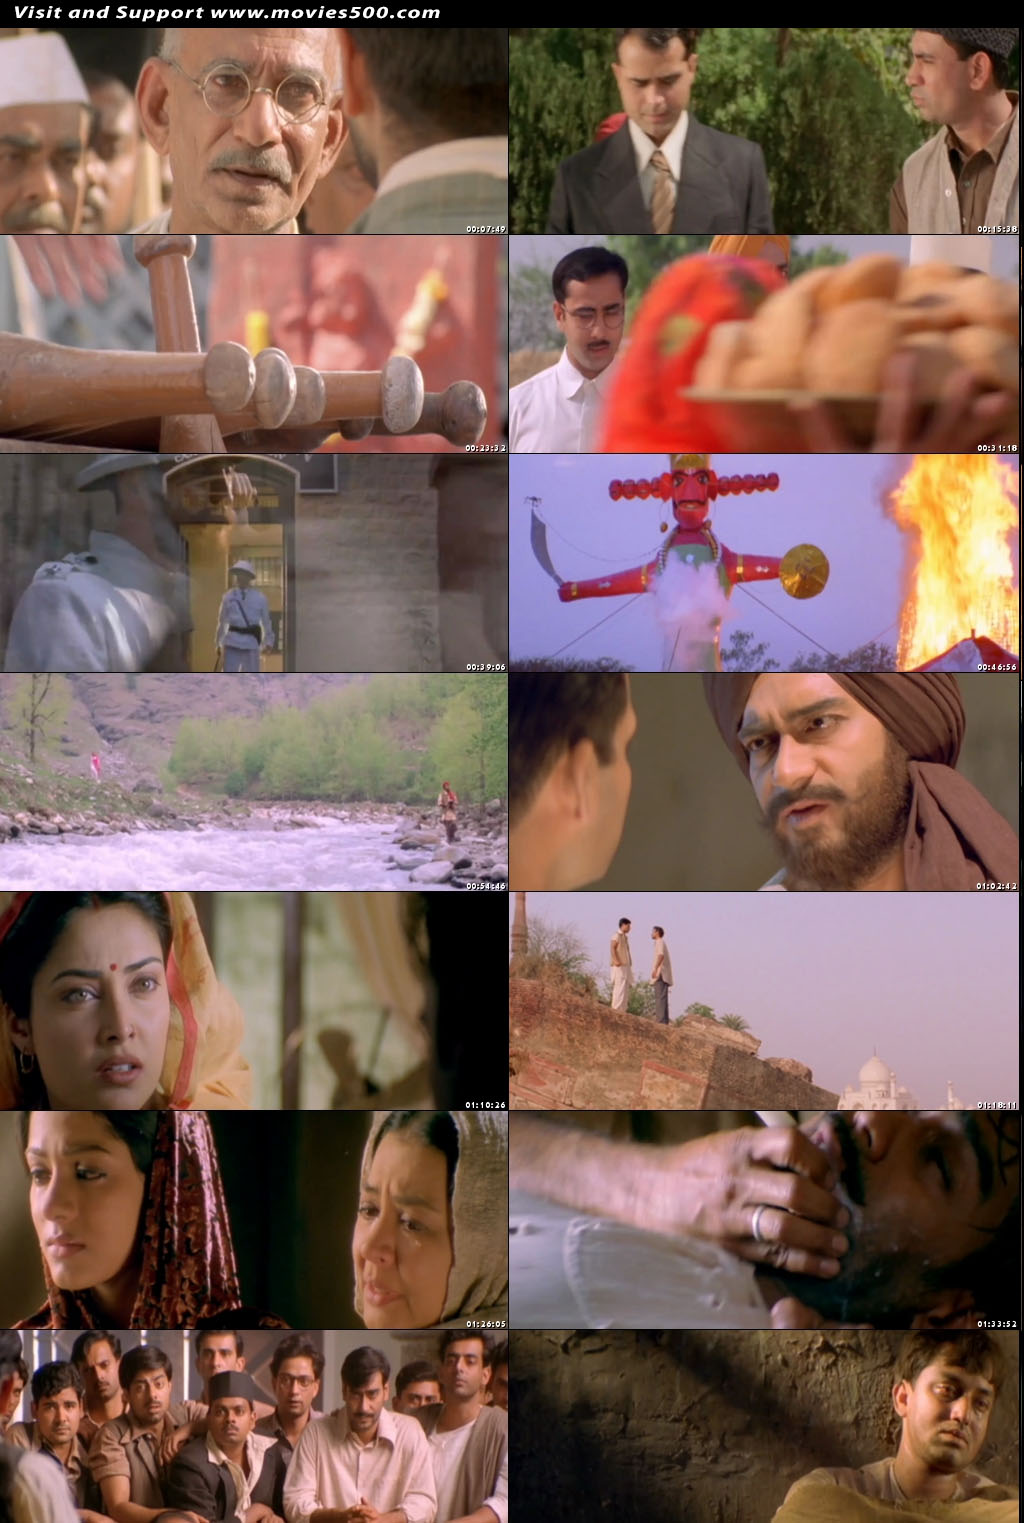 The Legend Of Bhagat Singh 2002 Hindi Movie Download at movies500.com